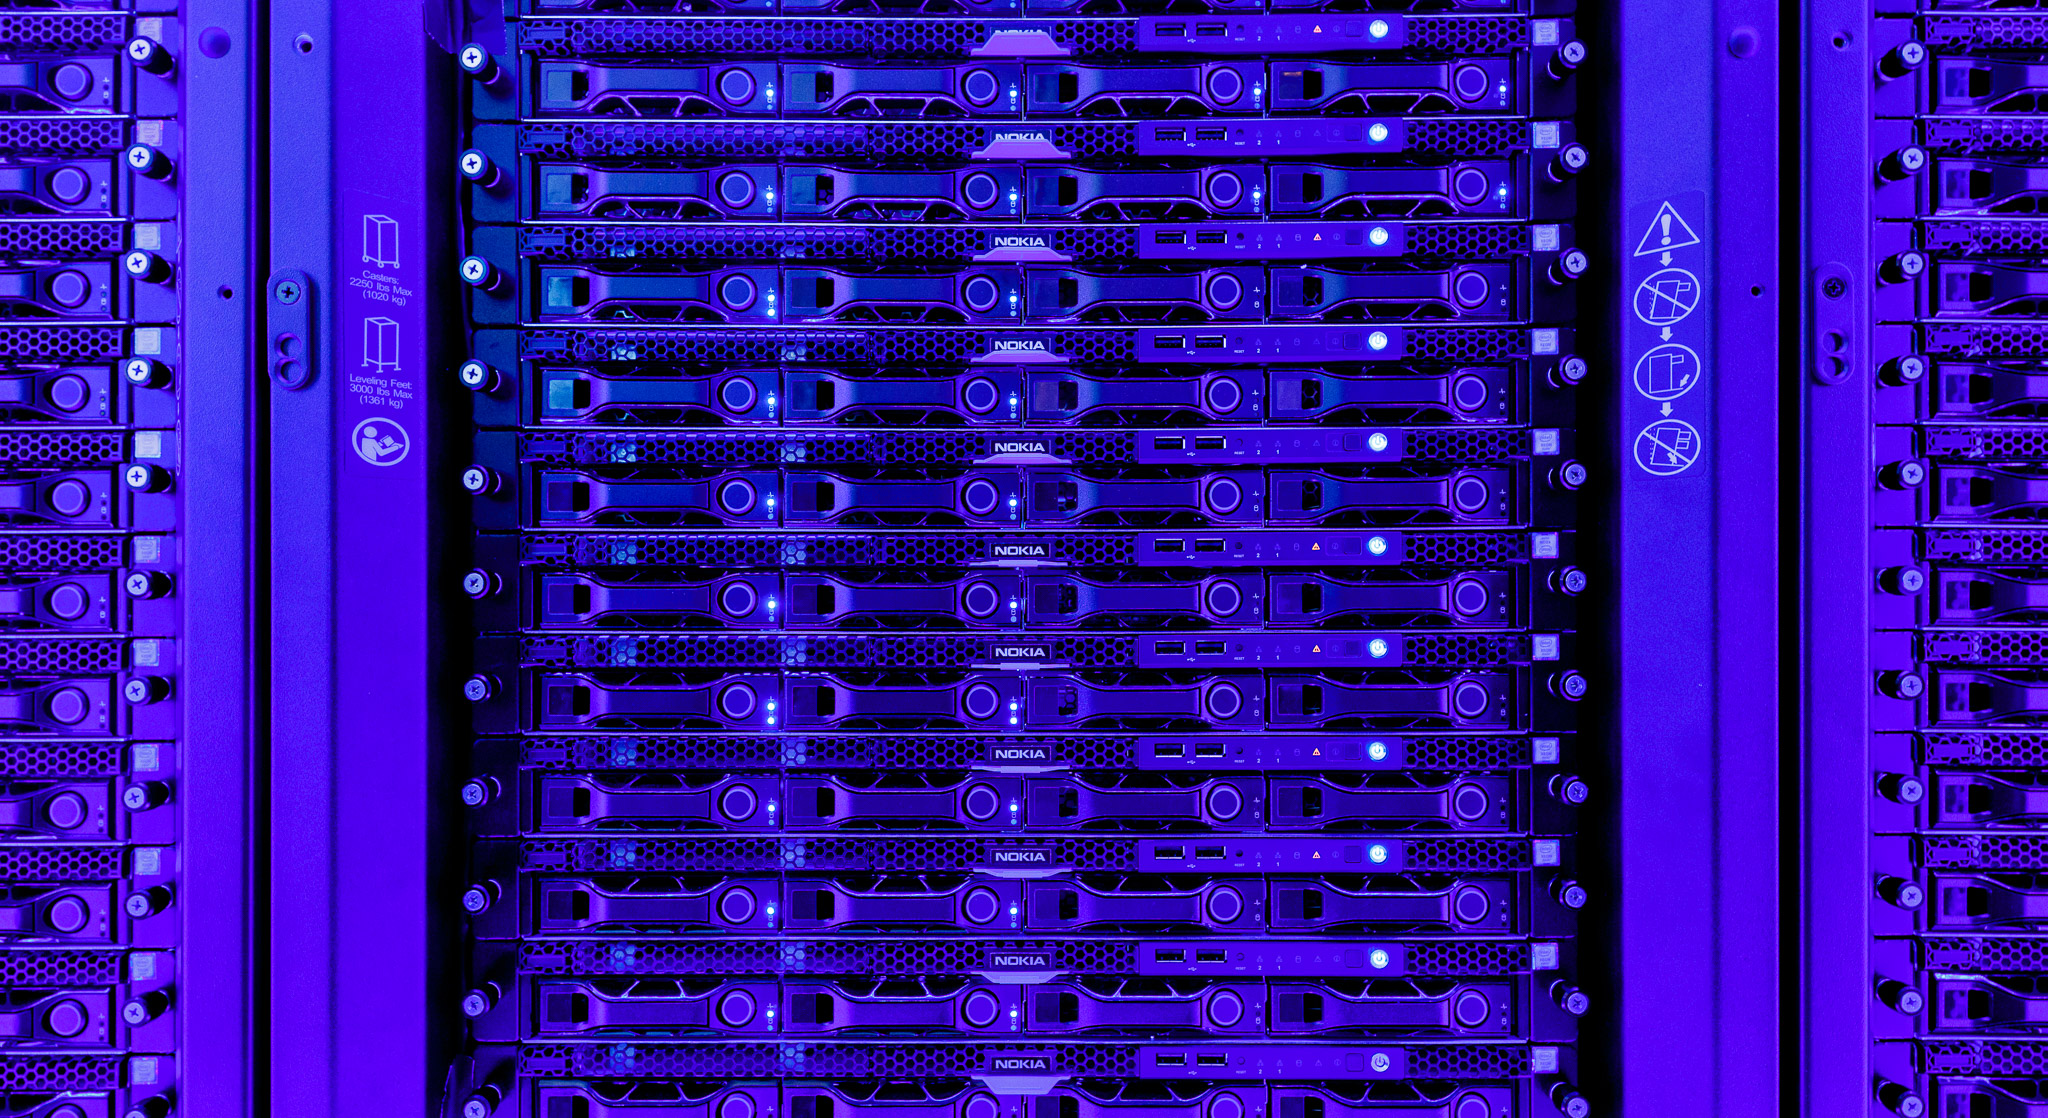 Most AI computing happens in data centers packed with hundreds or thousands of servers.